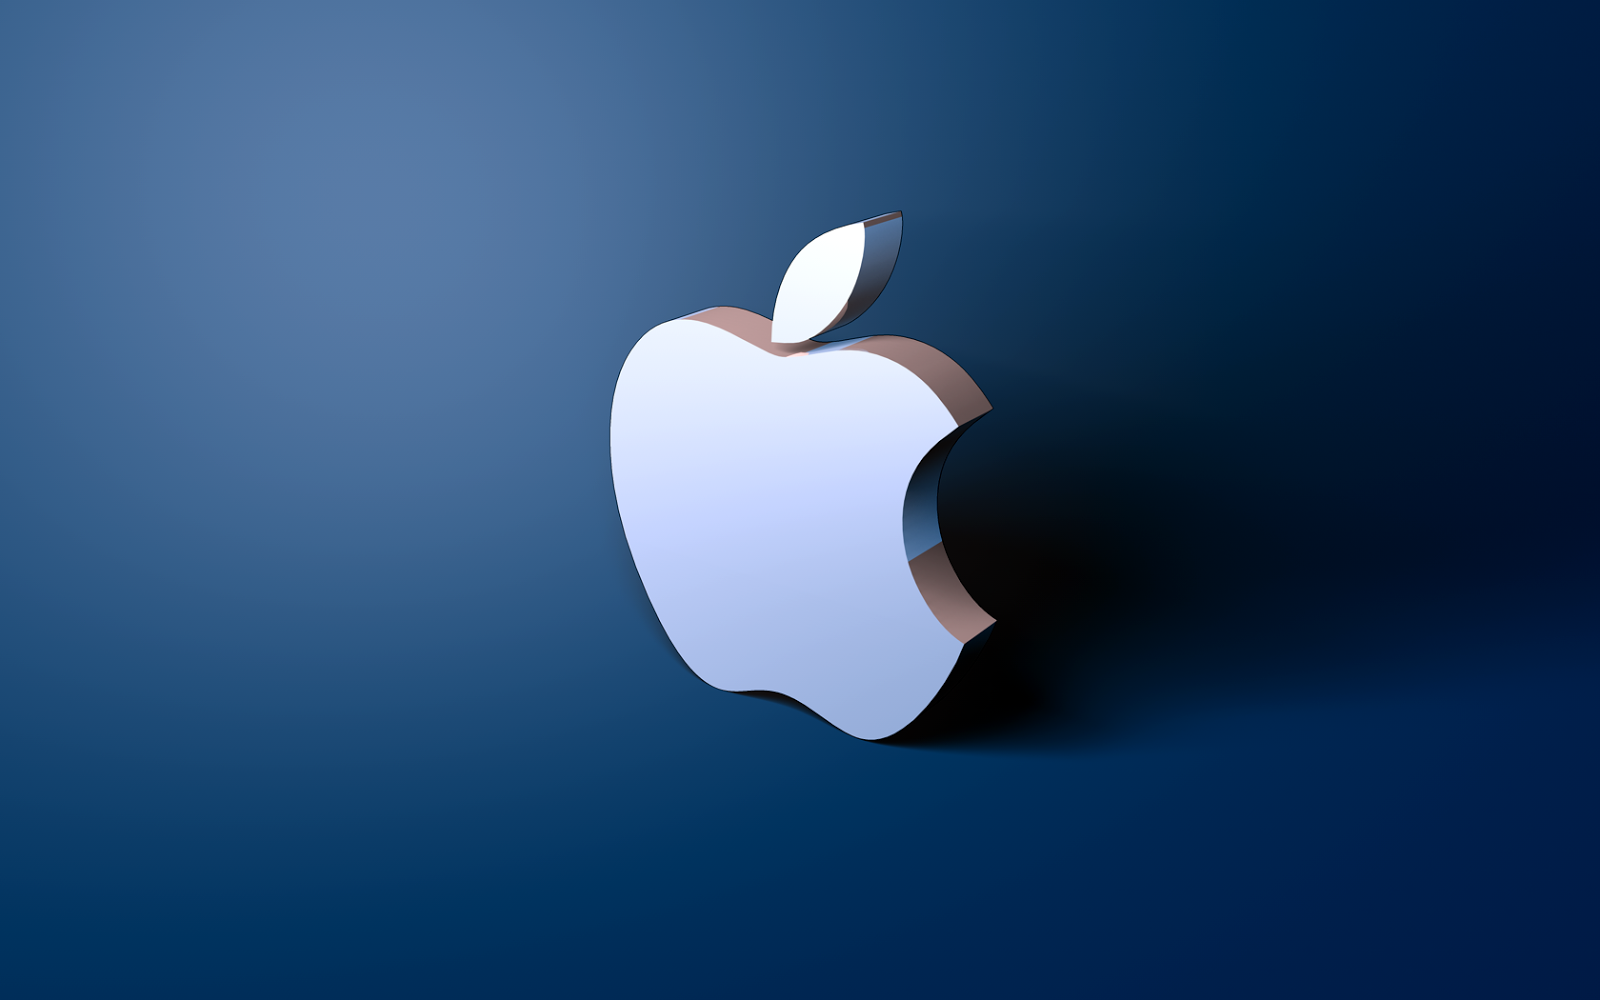 HD Wallpapers 1080p apple 1600x1000